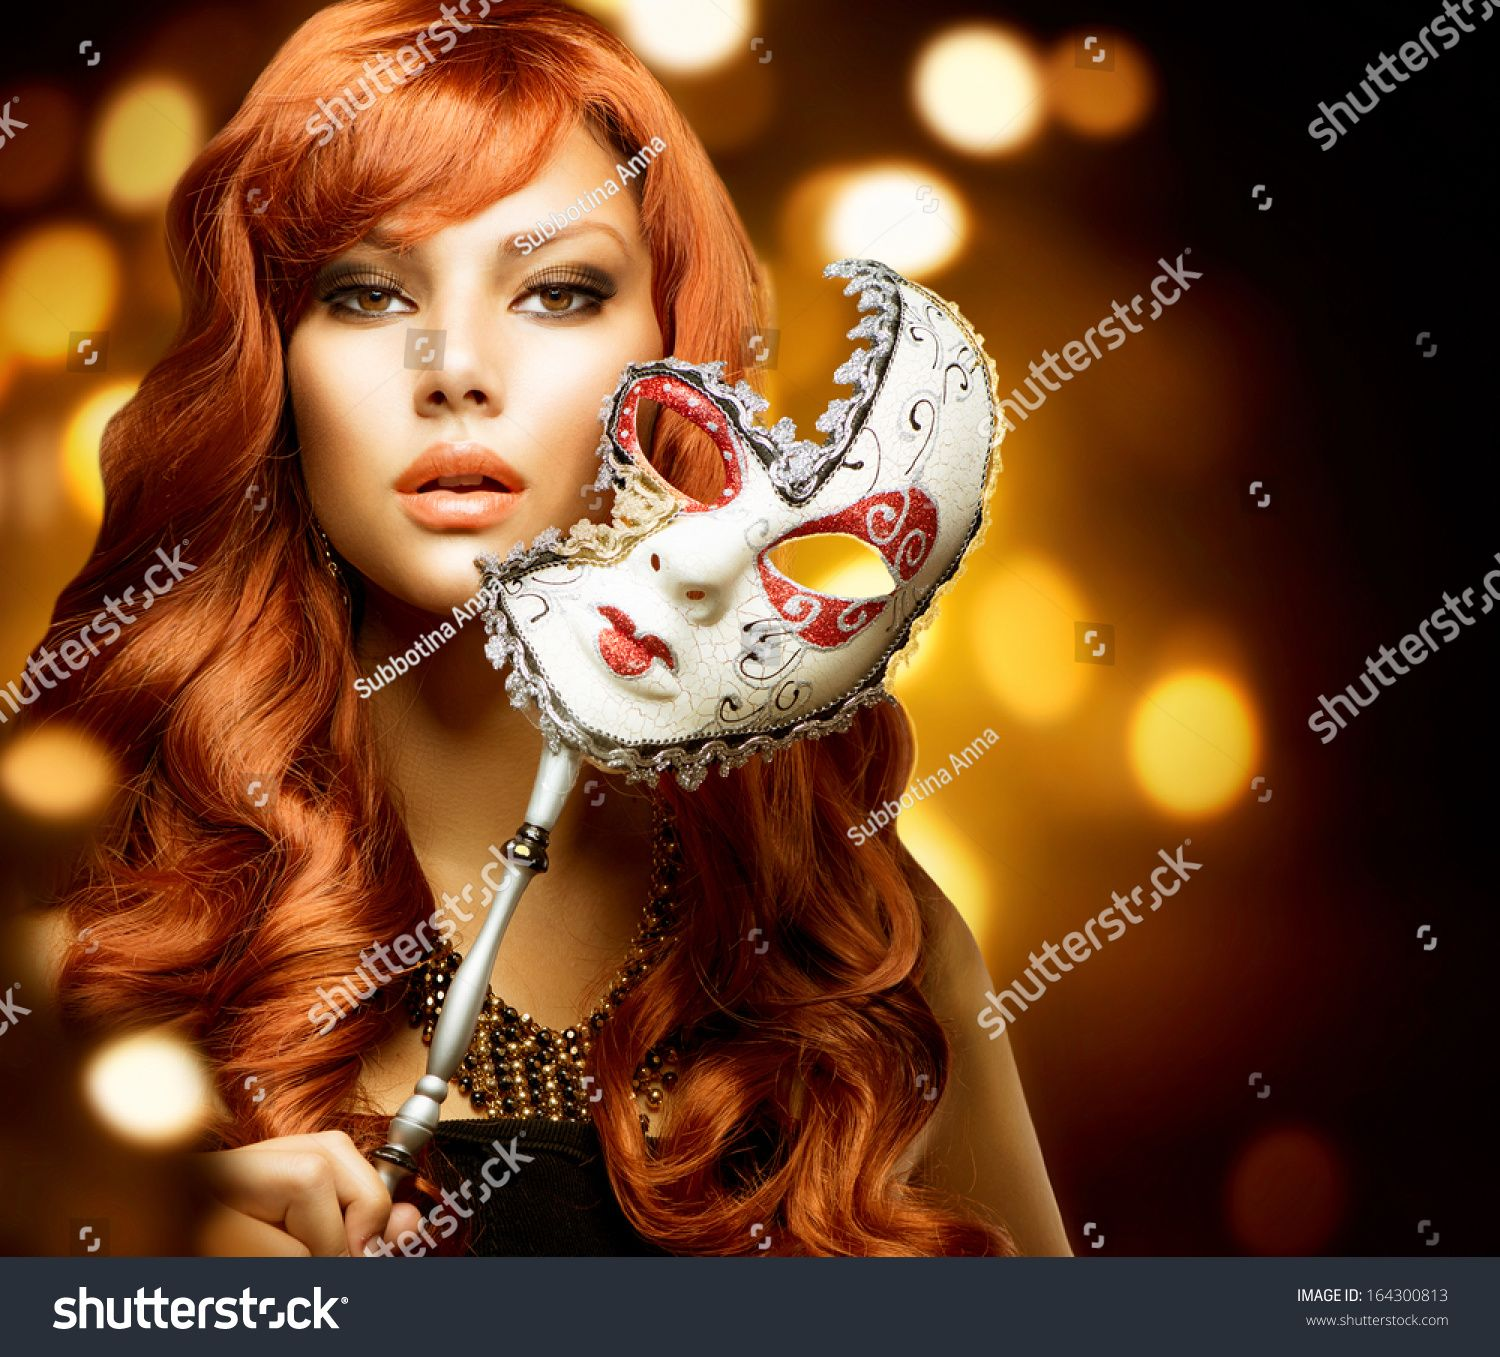 Beautiful Woman with the Carnival mask. Holiday Fashion Girl